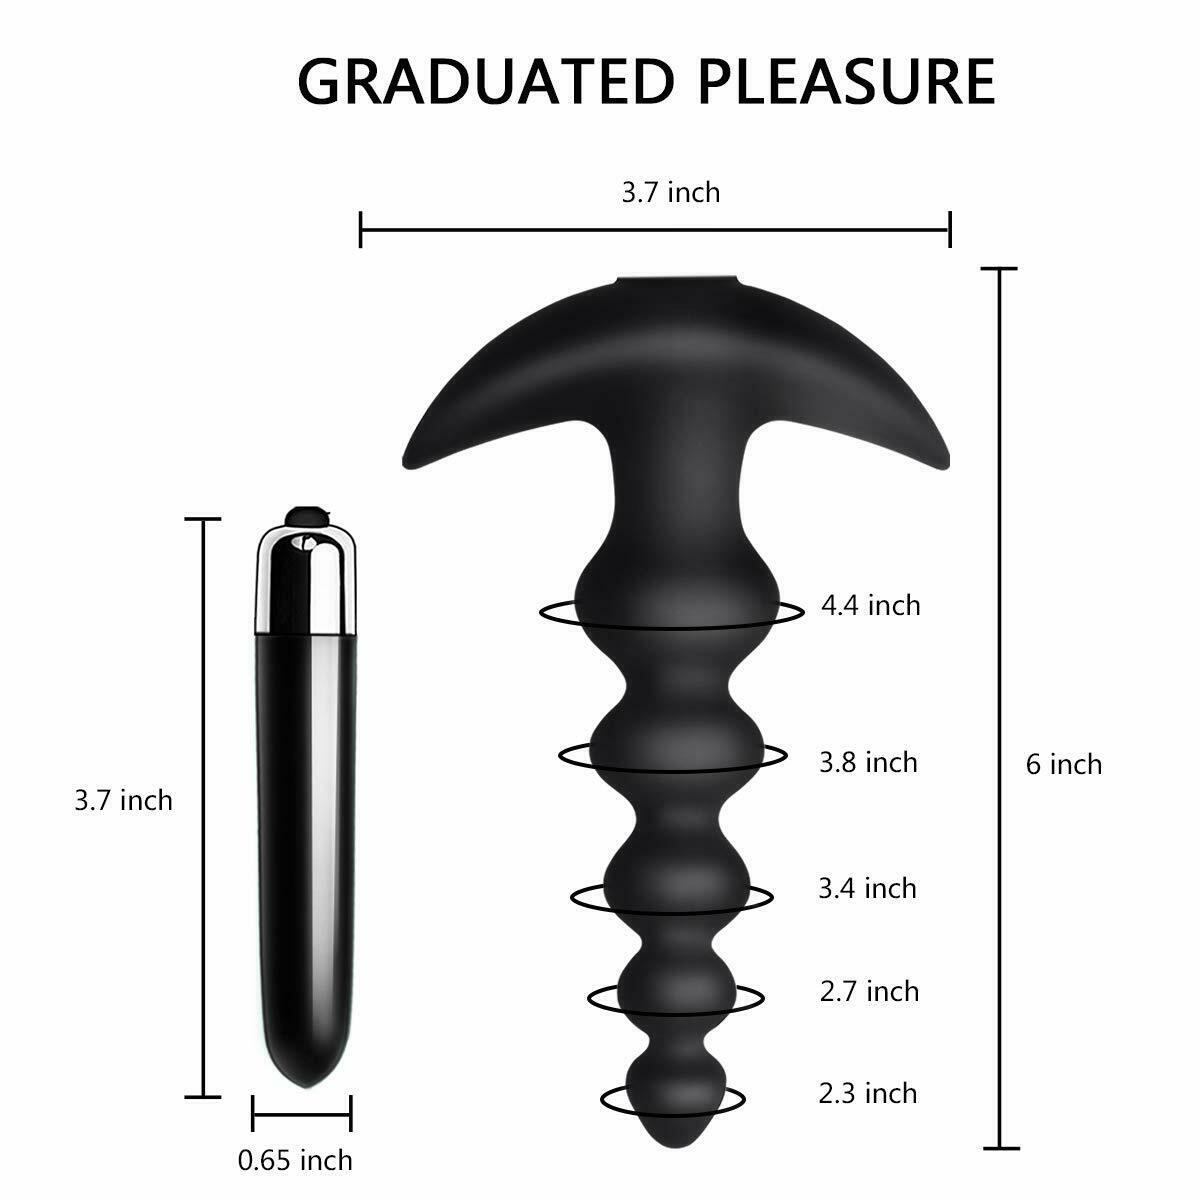 Anal Beads Butt Vibration Men Sex Design Plug Modes Flexible Adult Silicone Sex Women Erotic Anal 16 Toy Bxofl